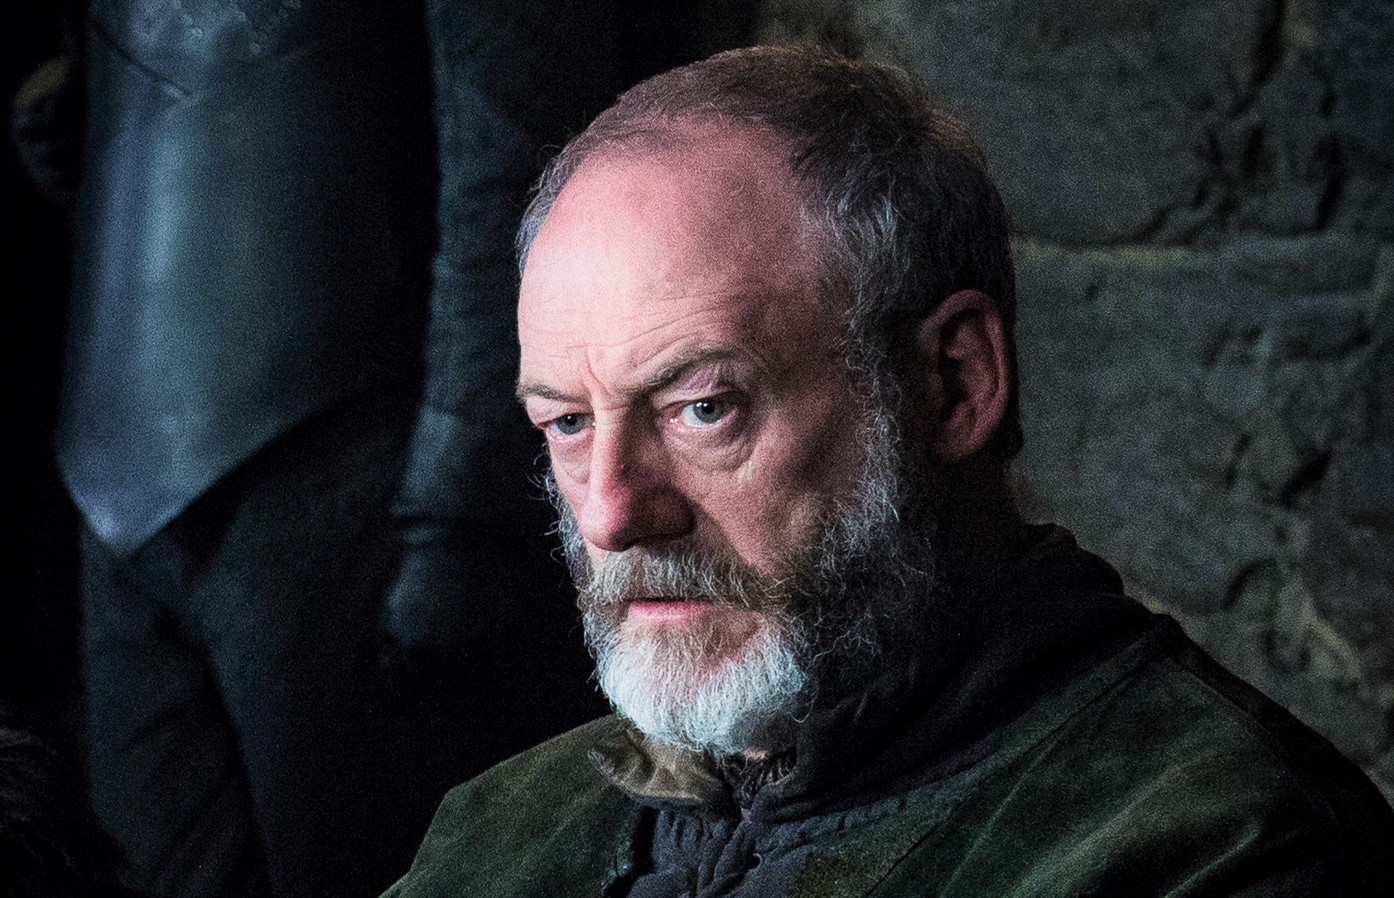 Davos Seaworth, Winterfell, Season 8